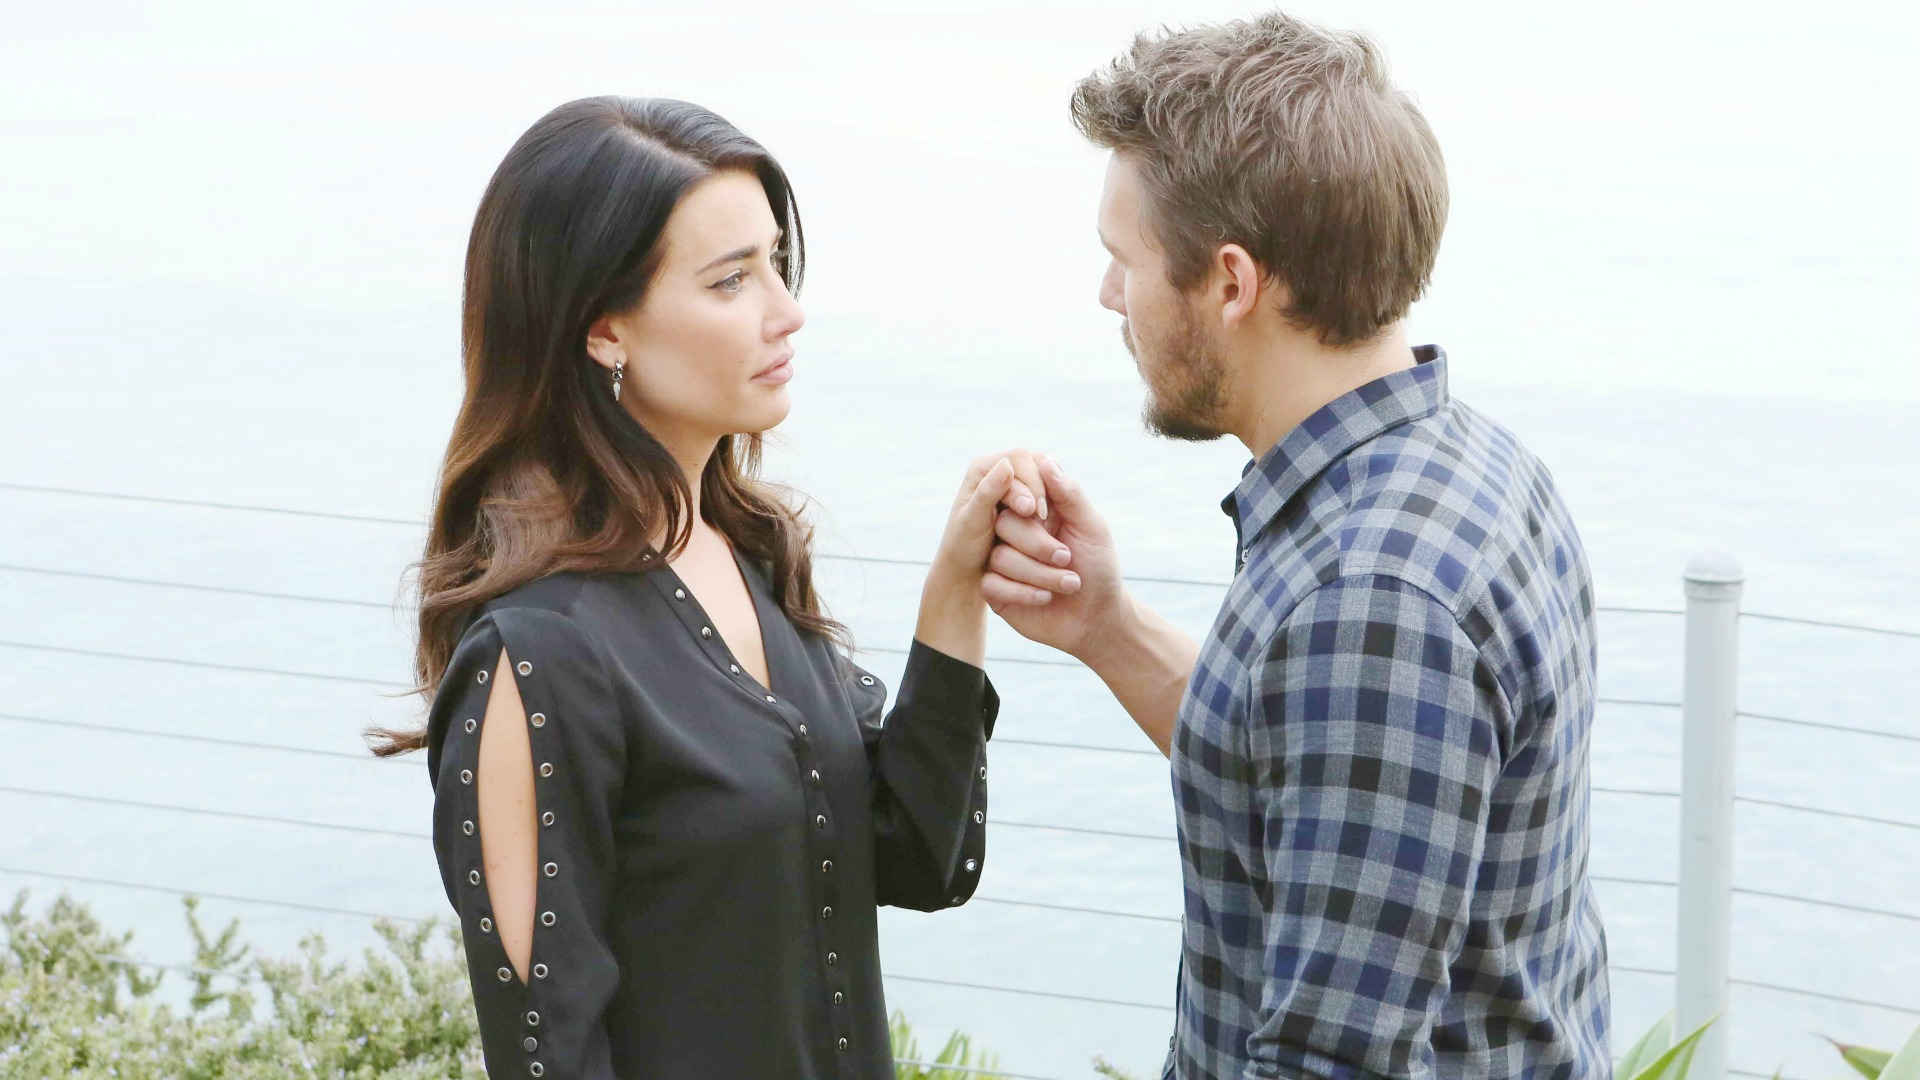 With Liam by her side, Steffy makes a permanent change regarding her marital status.